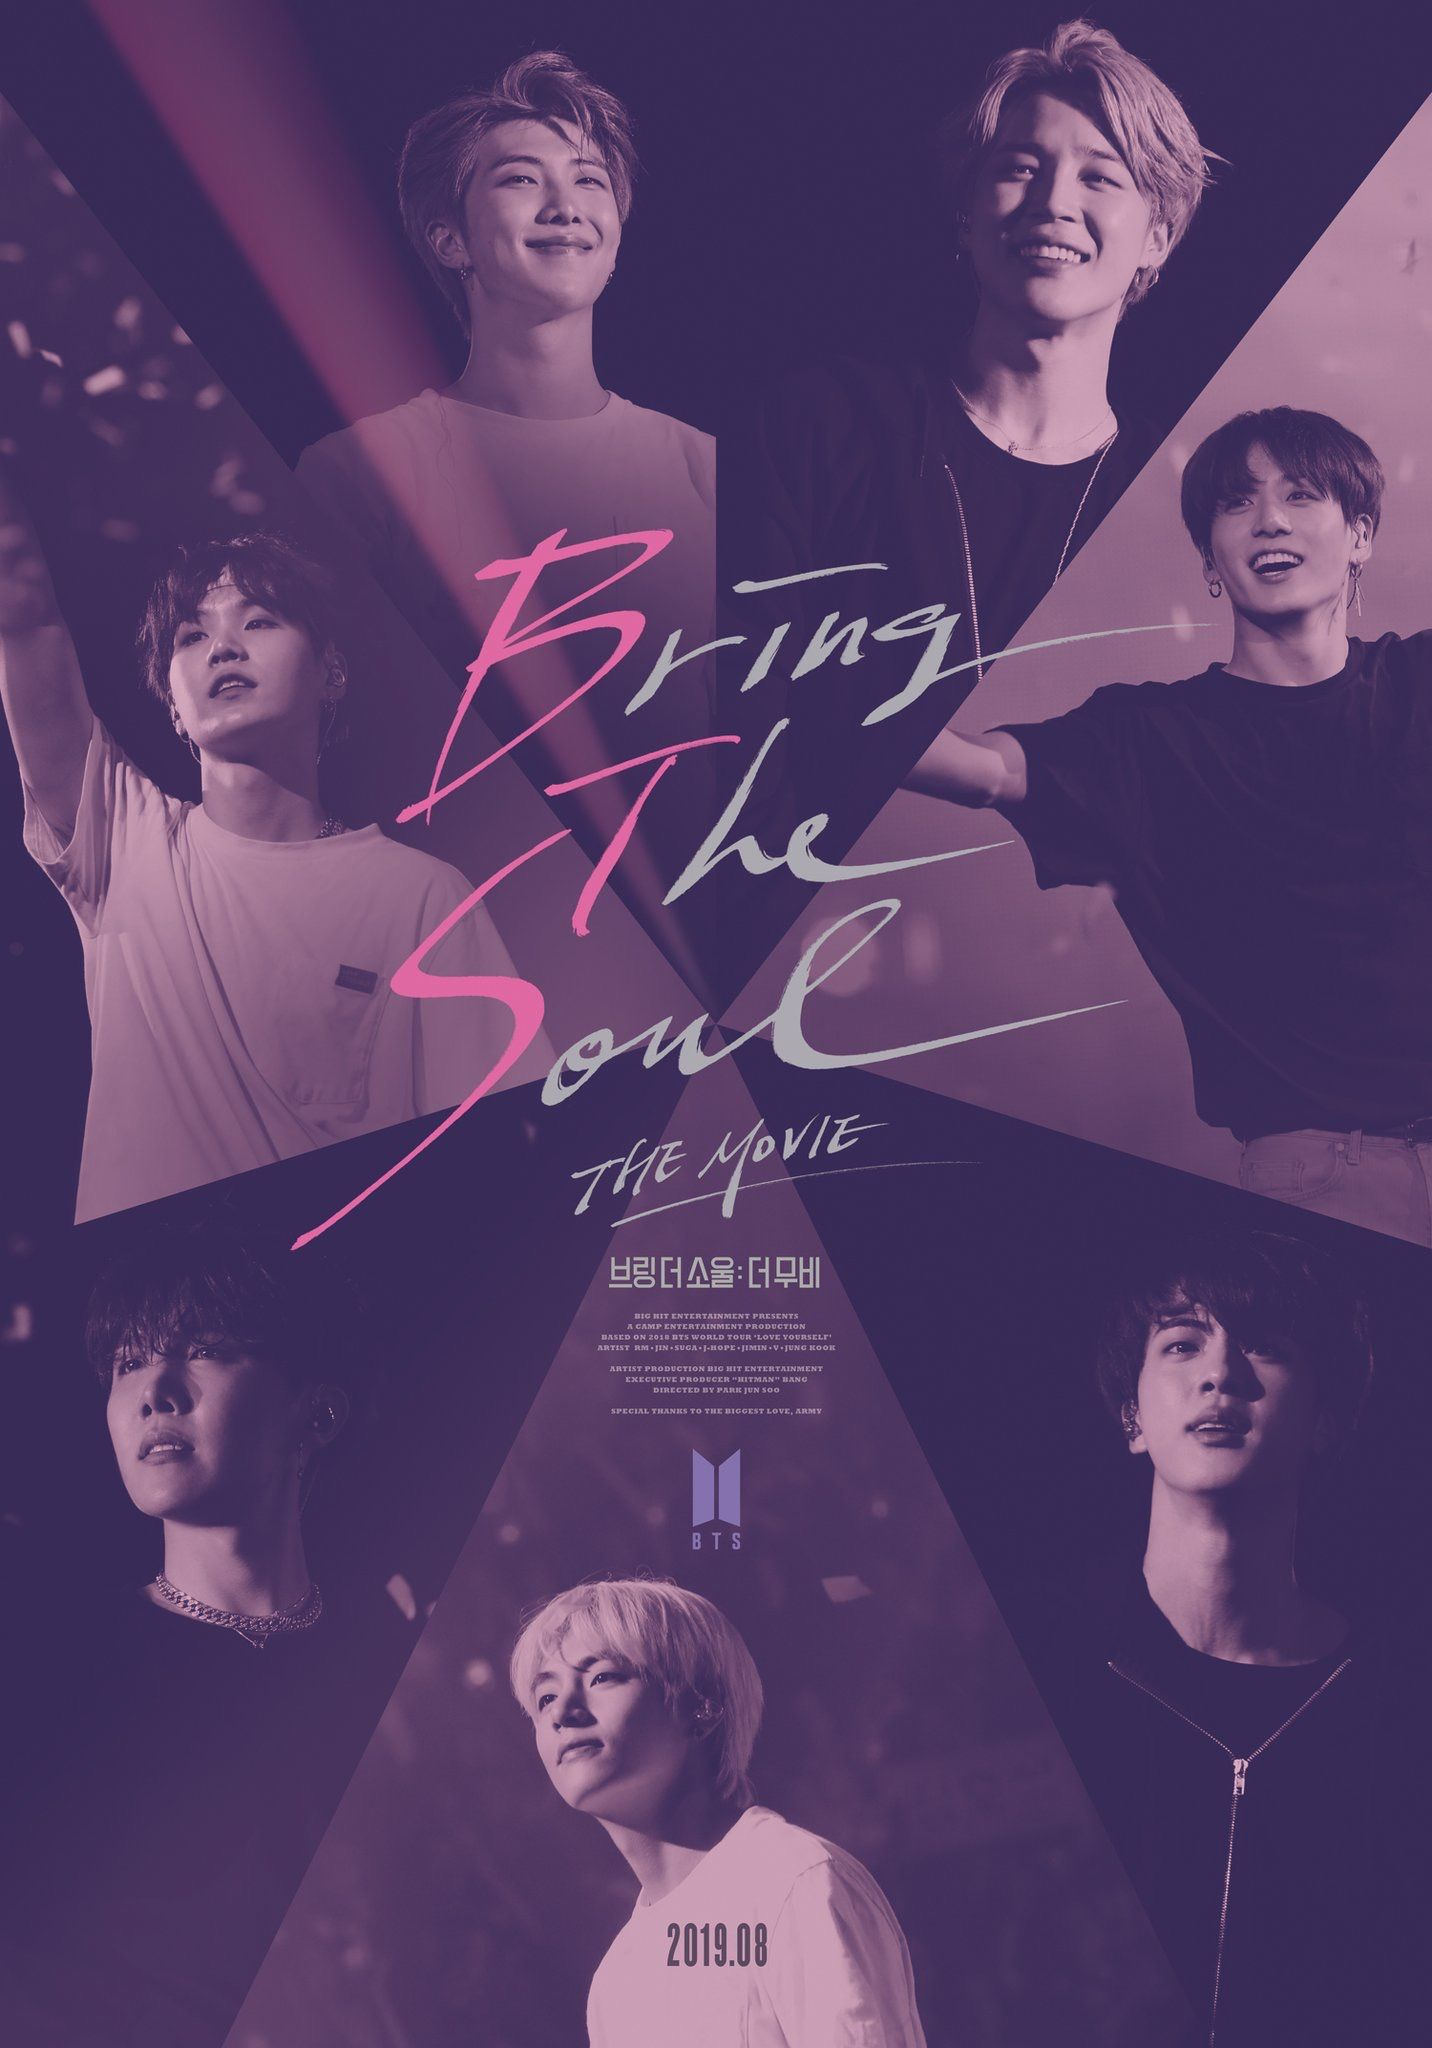 Bring The Soul The Movie Bringthesoulthemovie Com Bts Bringthesoul Themovie Bts Bts Concert Album Bts